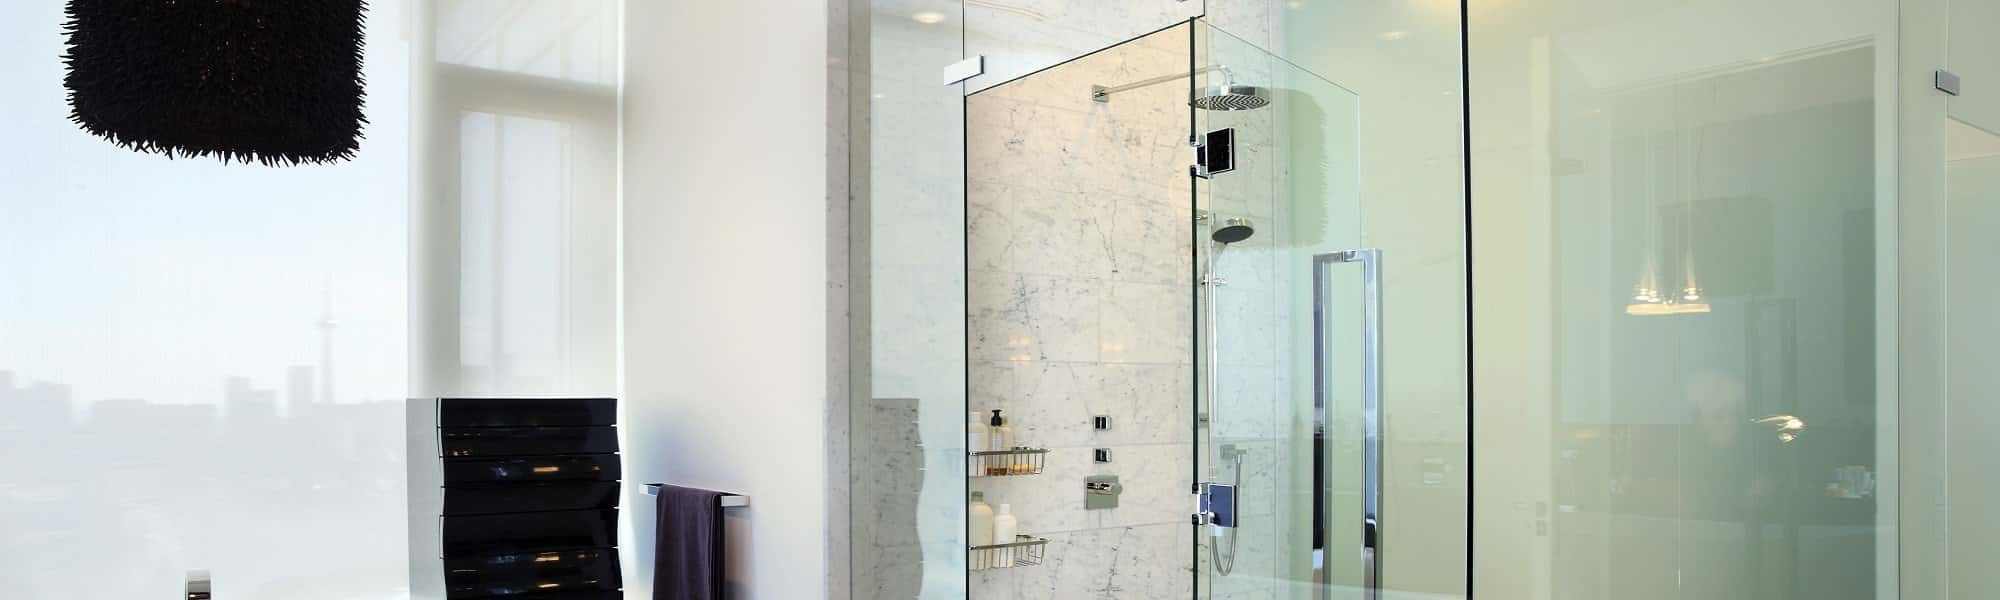 with doors glass custom improvisionsimprovisions products shower